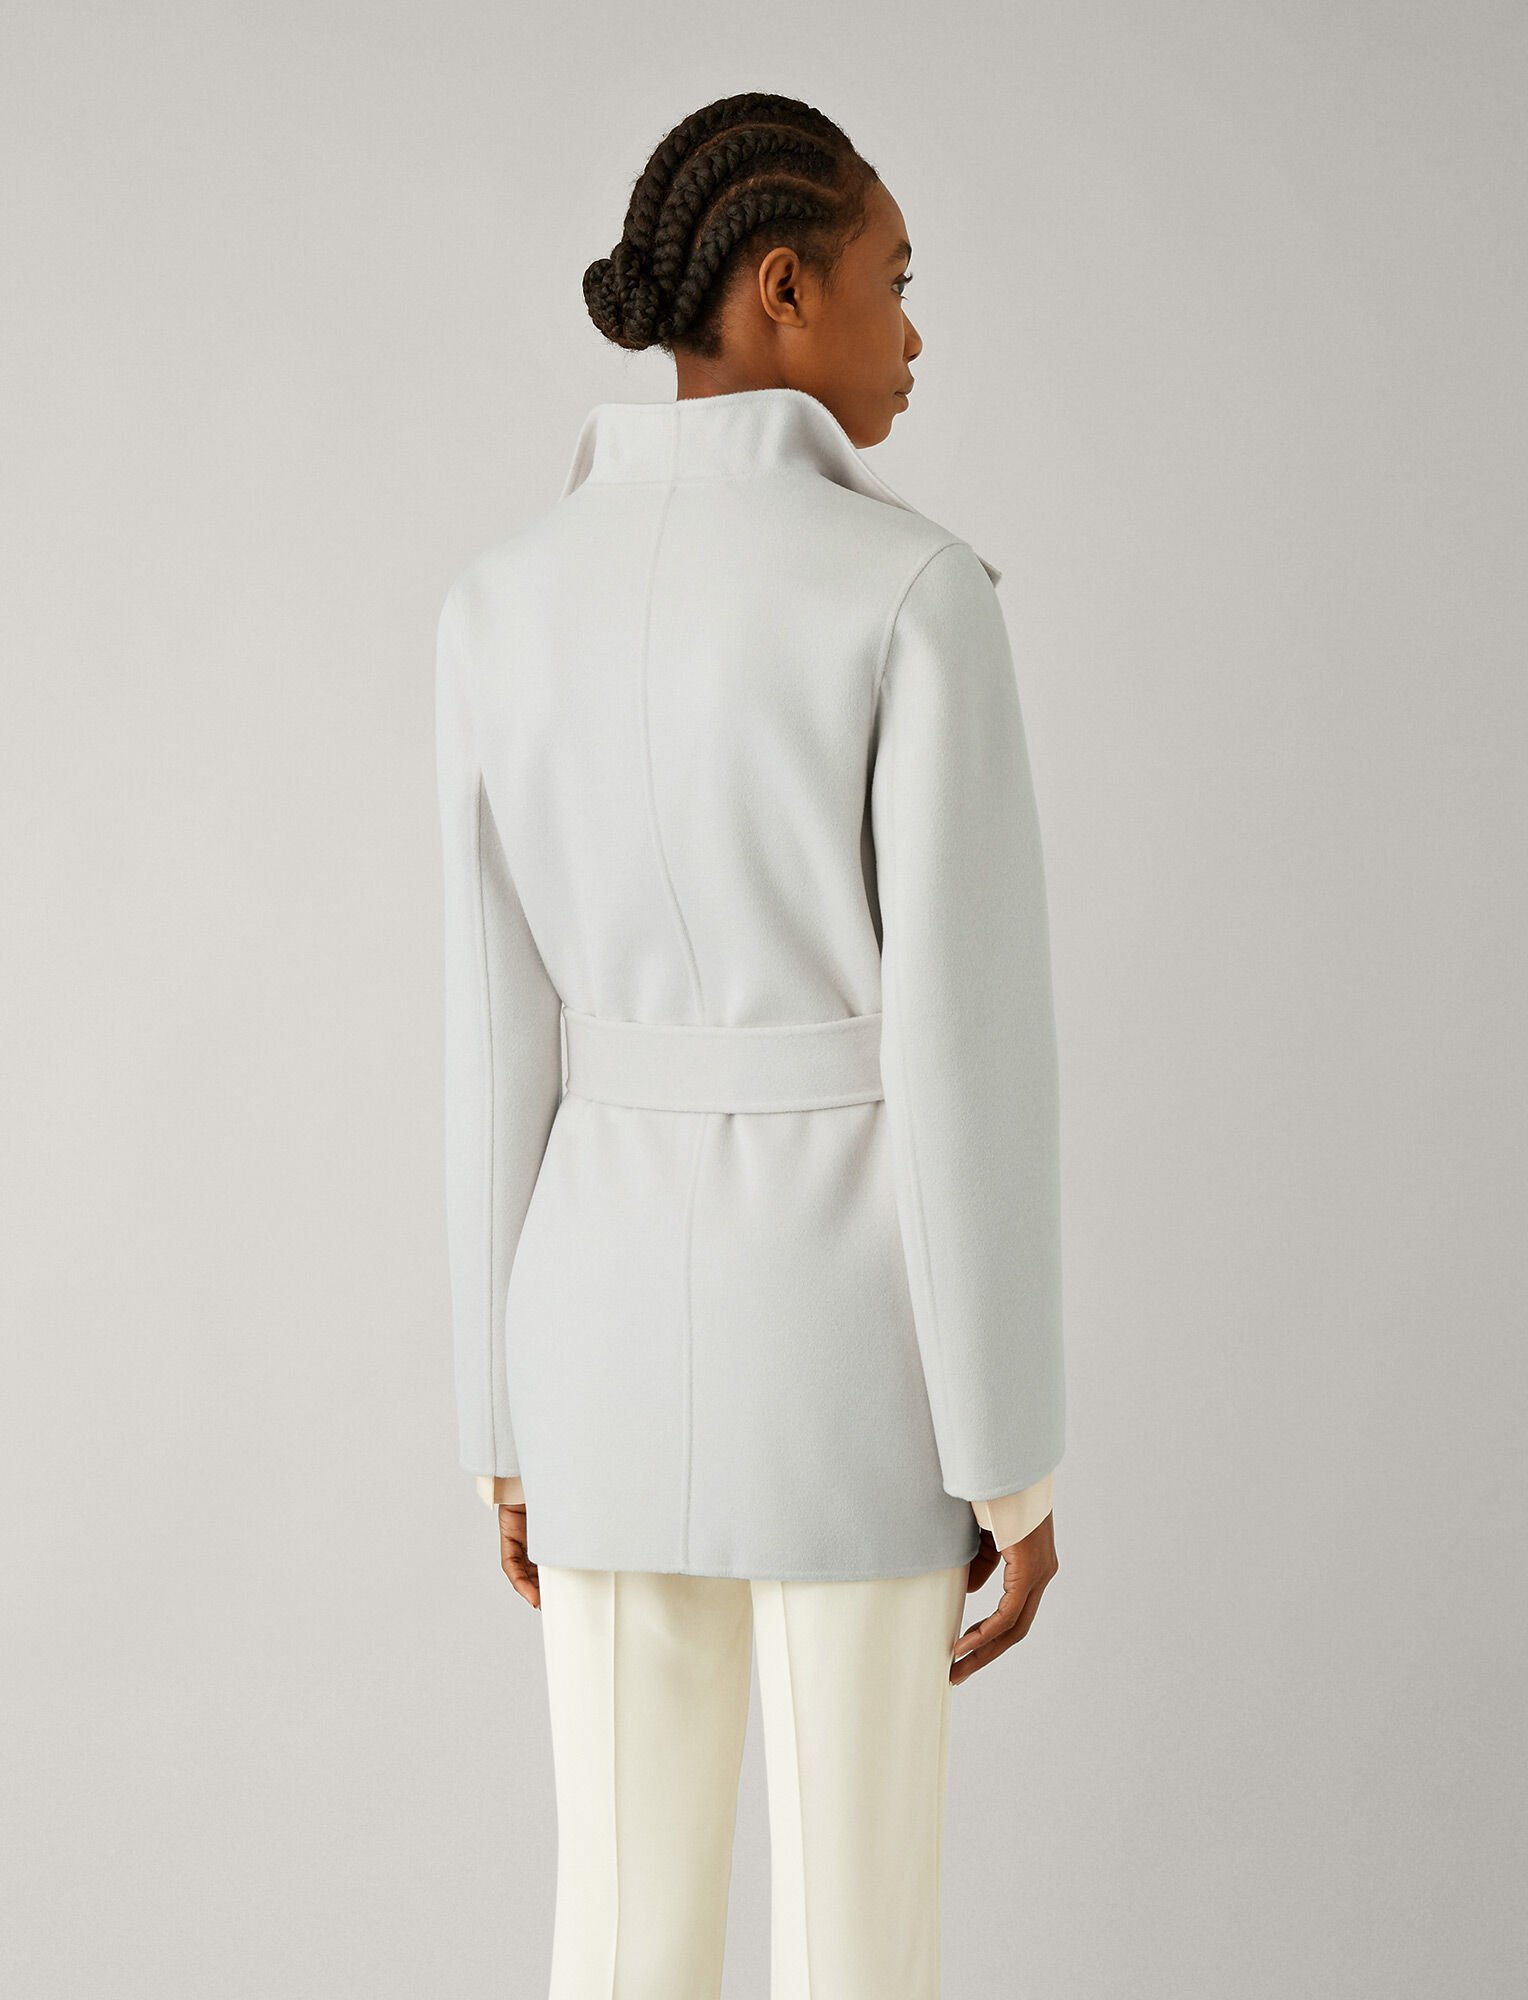 Joseph, Lima Short Double Face Cashmere Coat, in PEARL